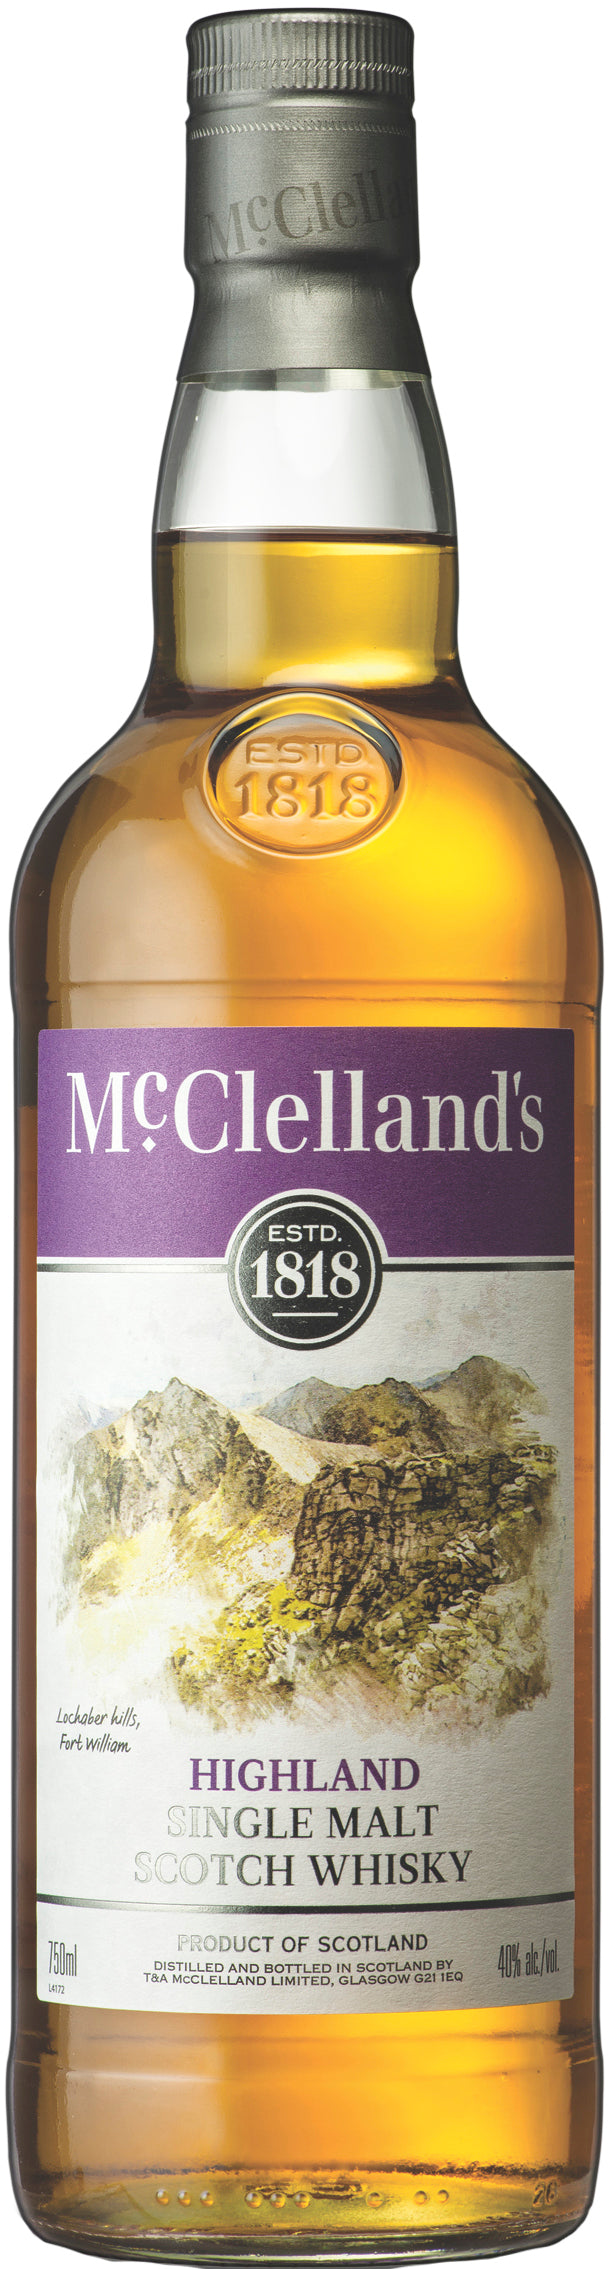 McClelland's Highland Single Malt Scotch Whisky